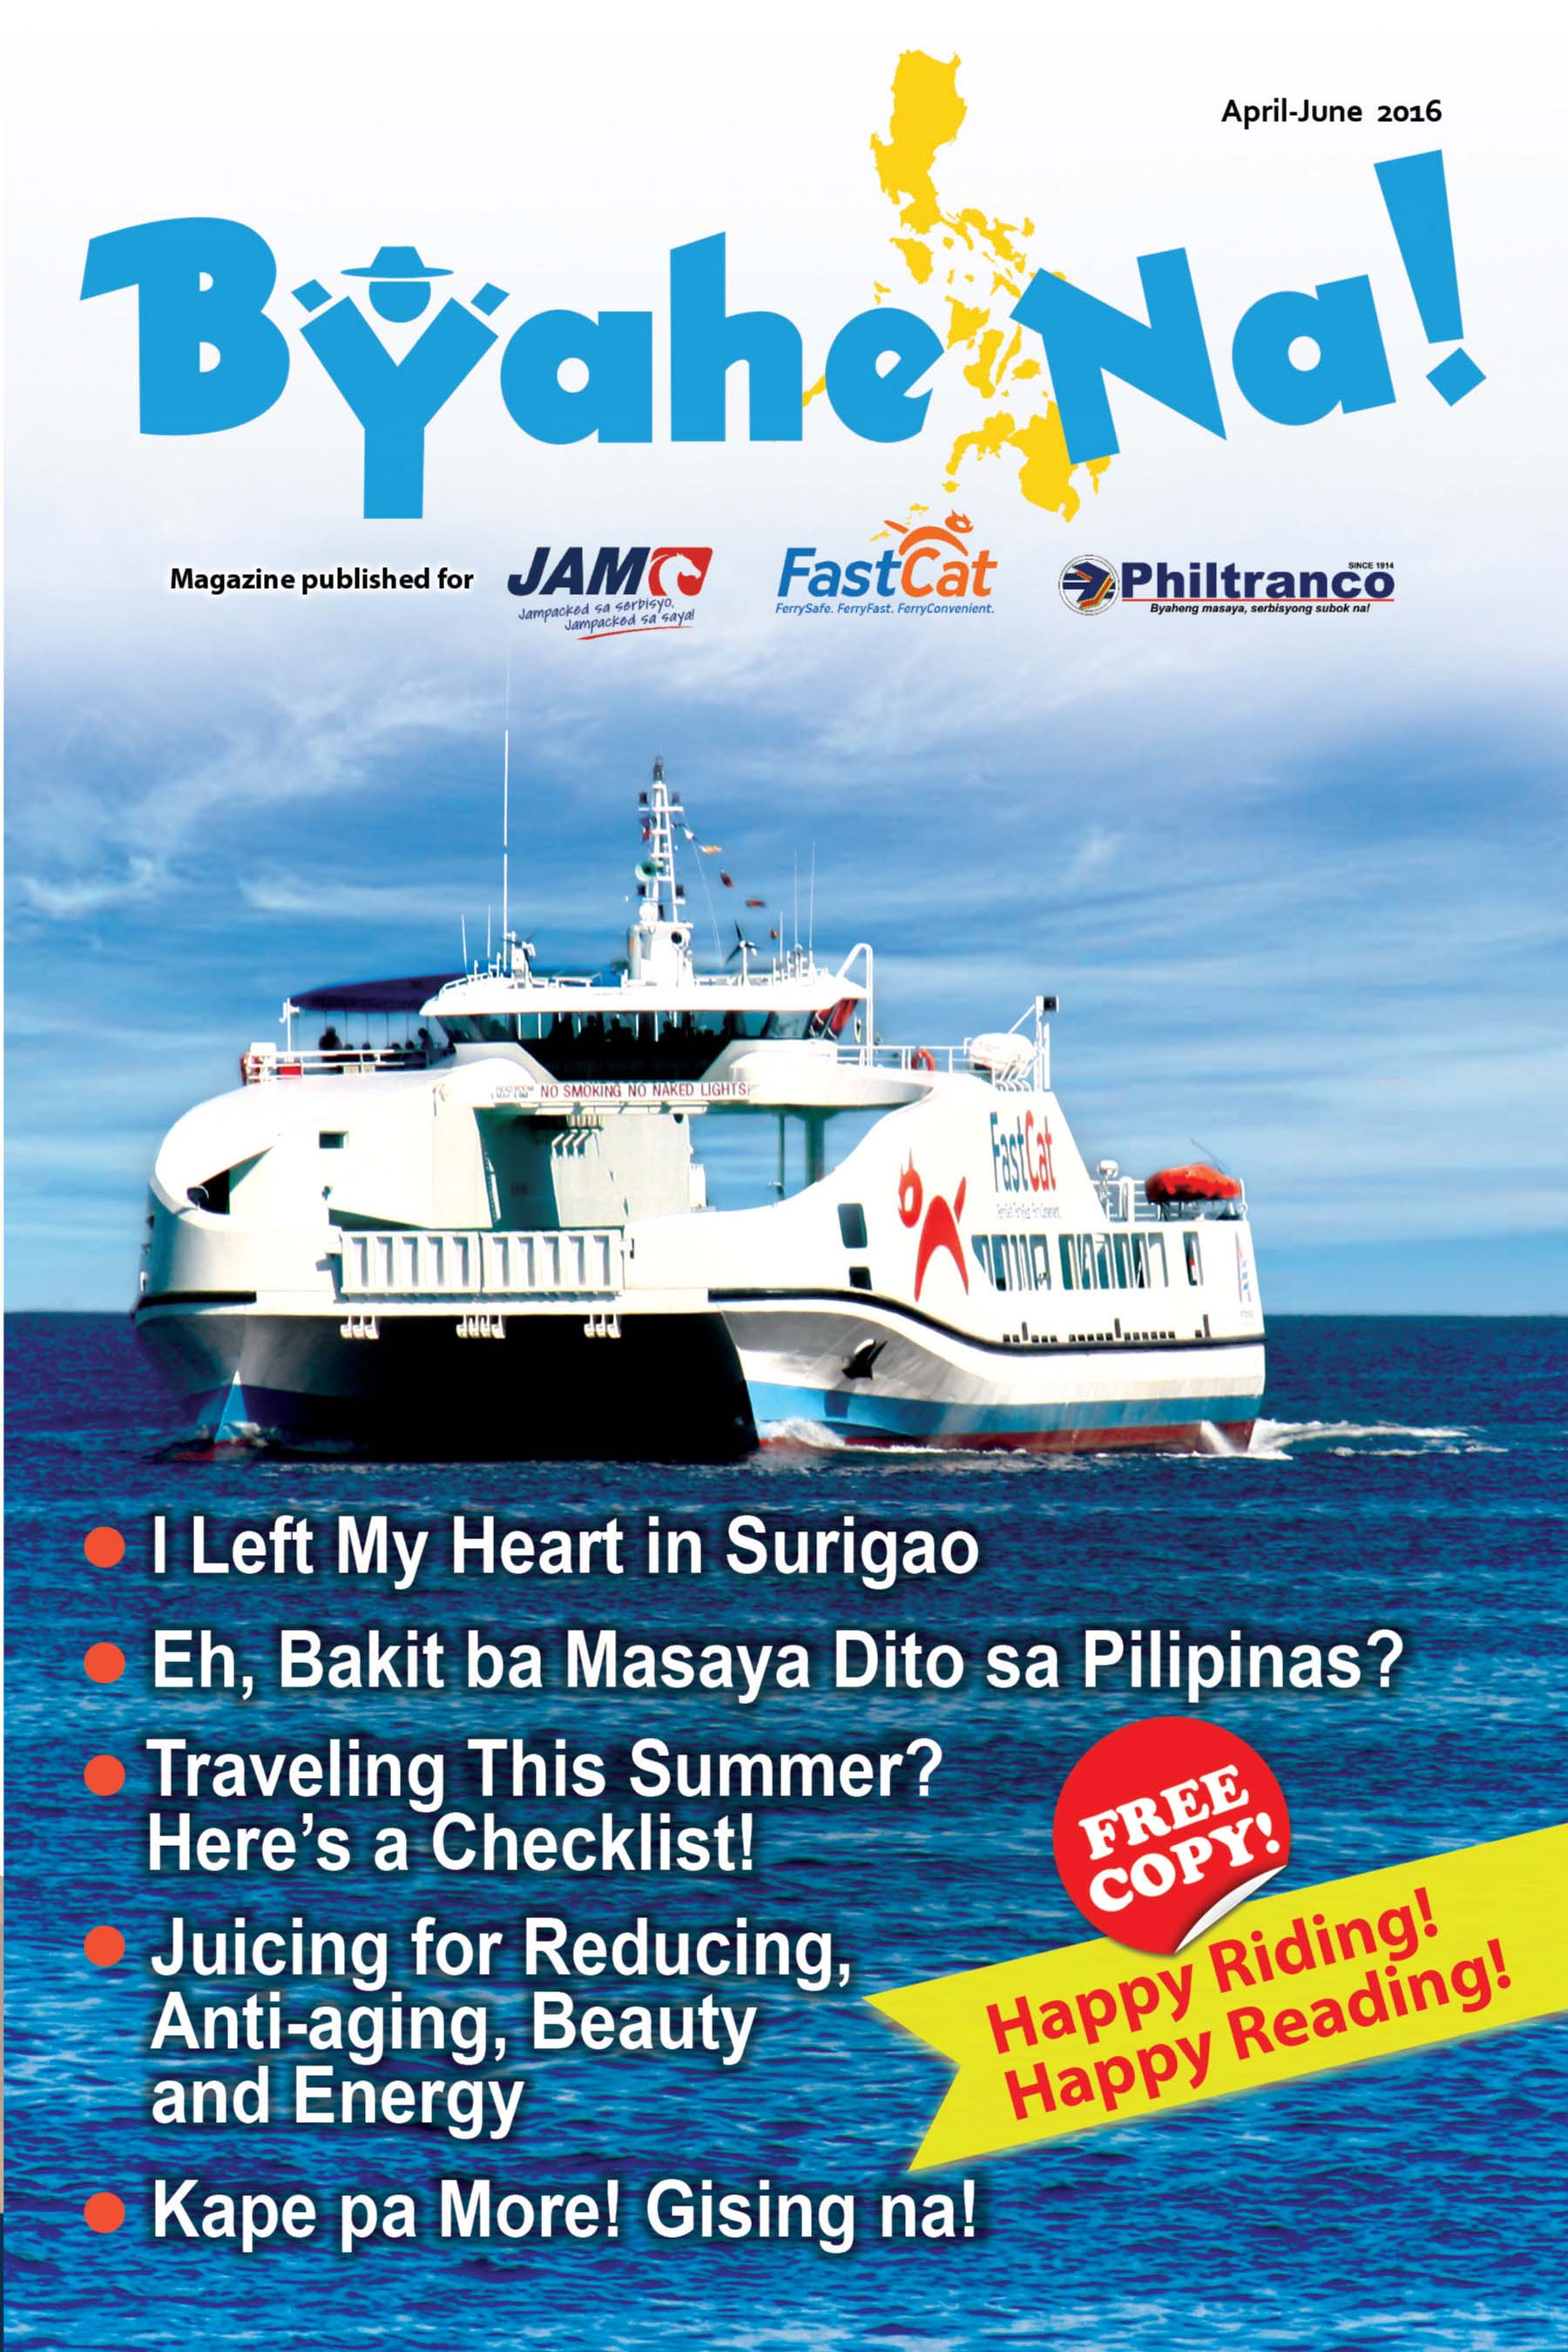 Byahe Na! 9th issue